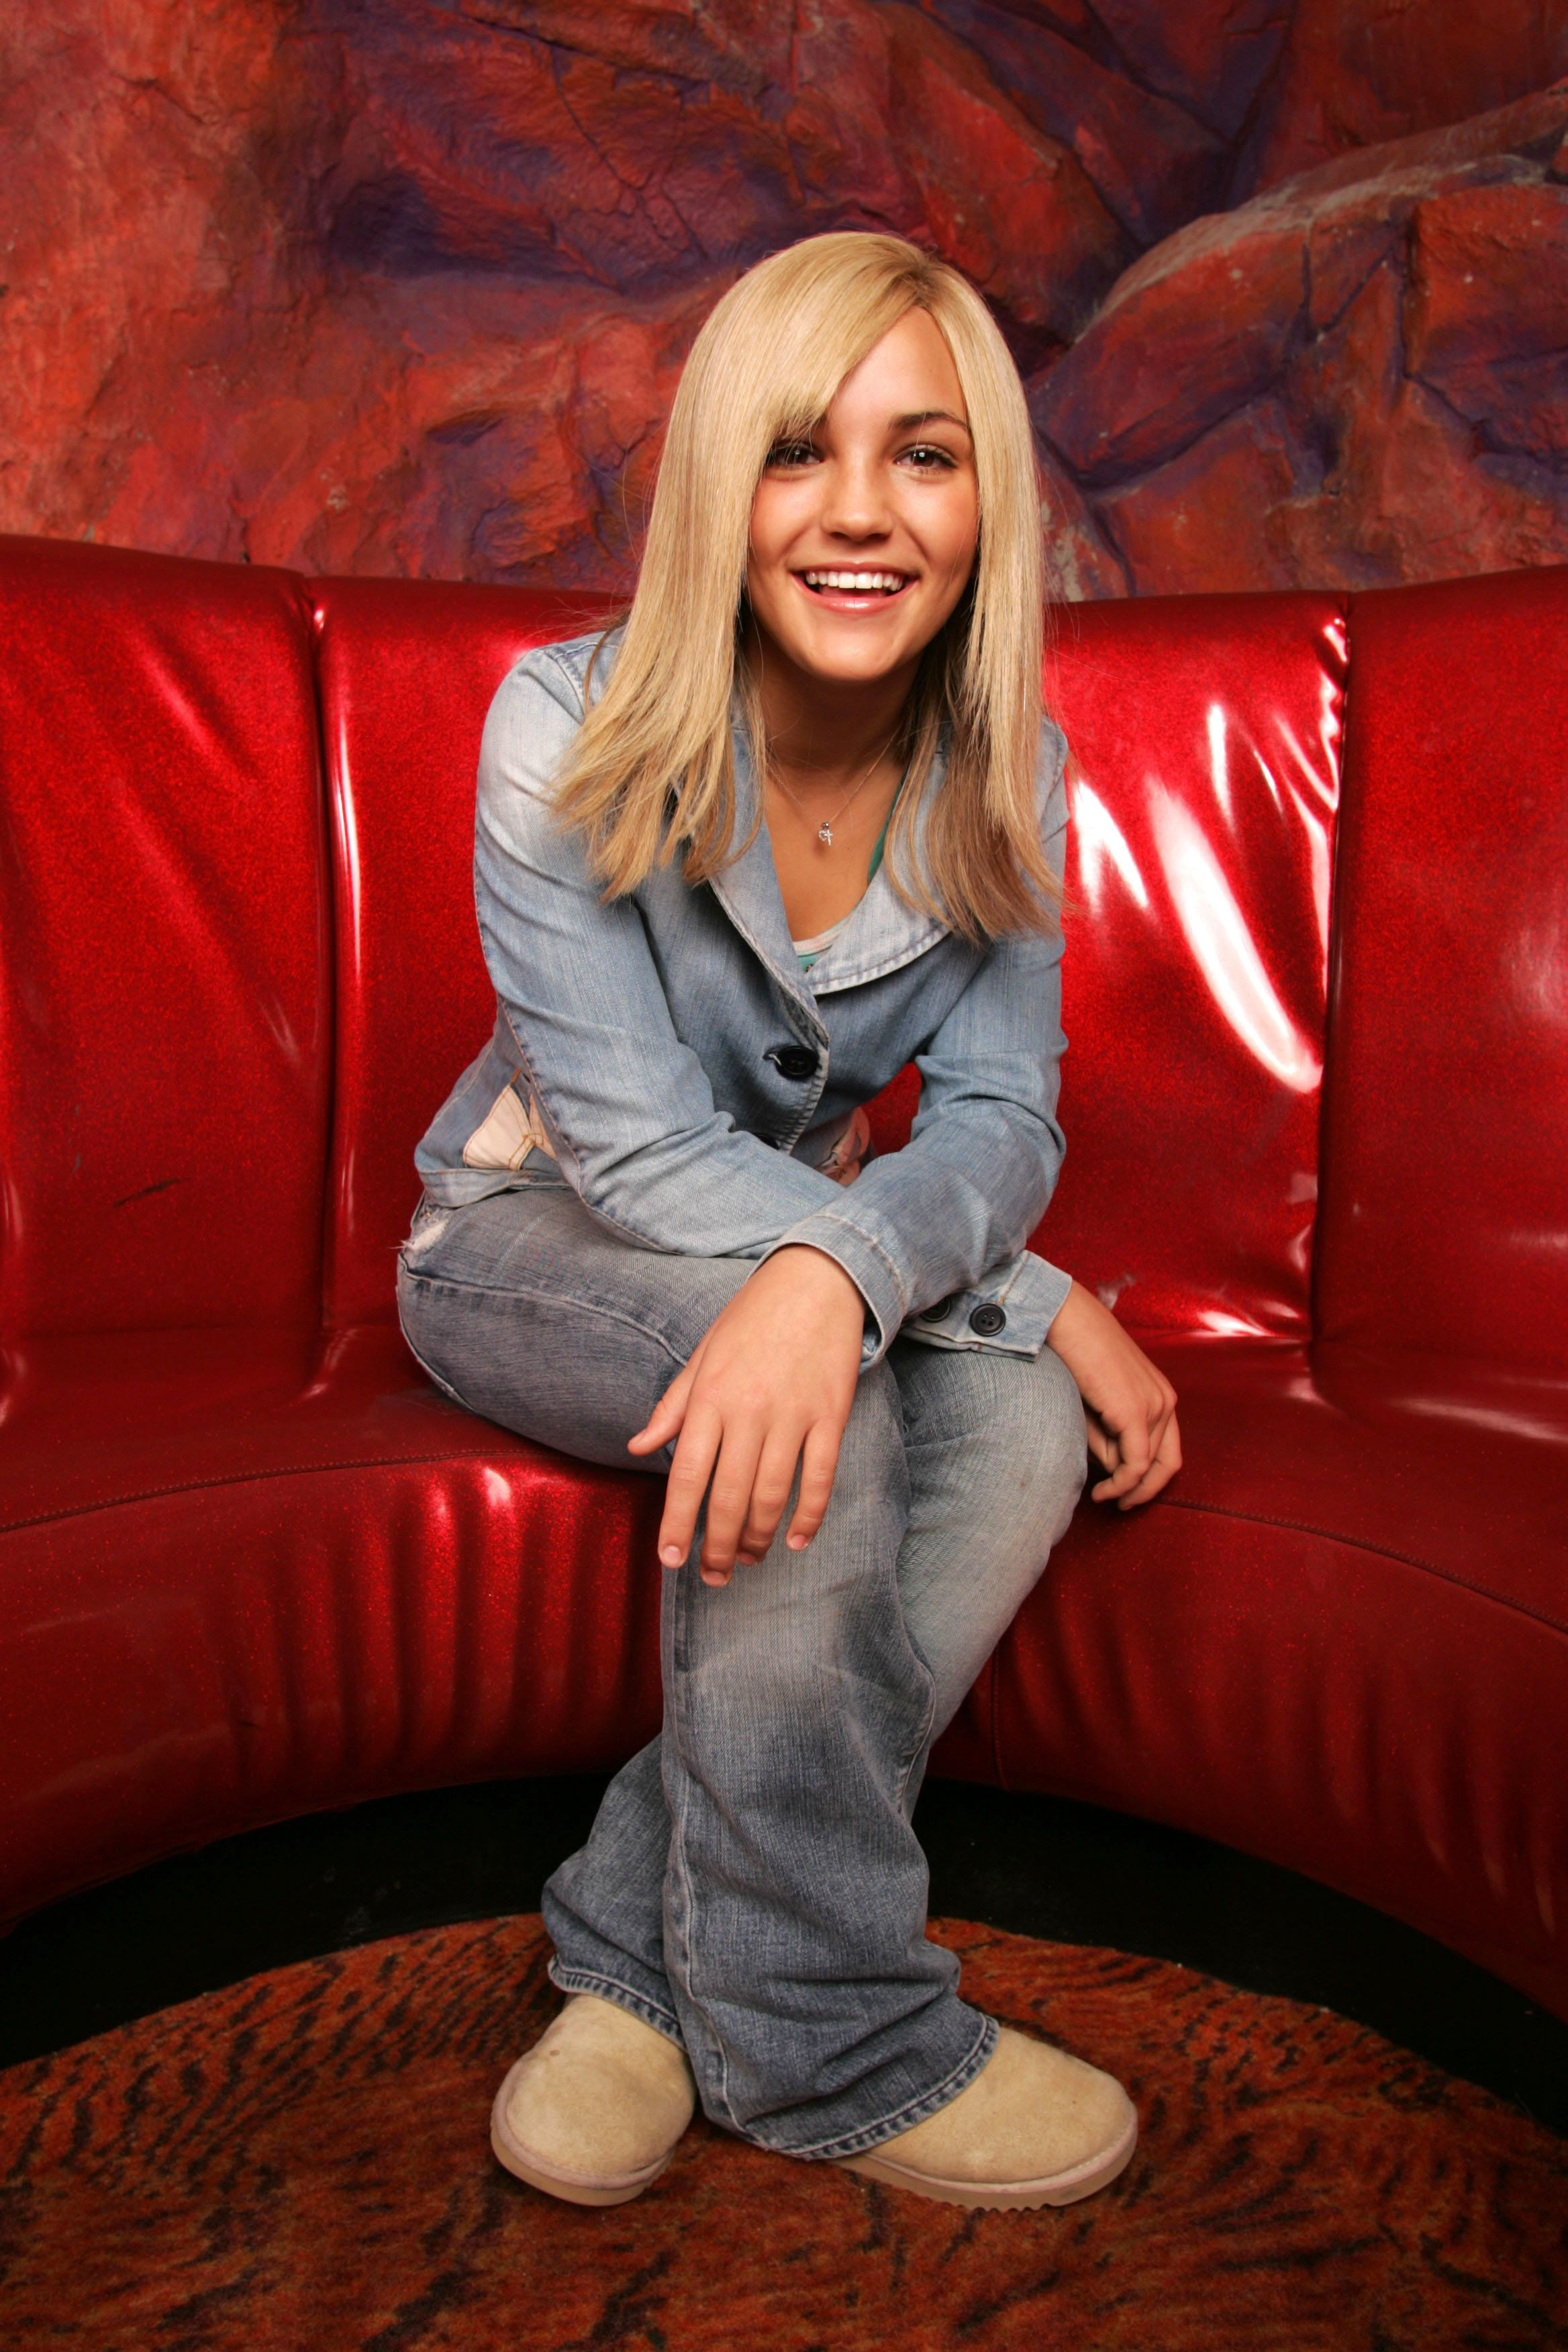 NEW YORK - JANUARY 06:  (U.S. TABS OUT AND NO SALES TO A.M.I)  Actress Jamie Lynn Spears poses for a portrait on January 06, 2005 in New York City.  (photo by Todd Plitt/Getty Images)